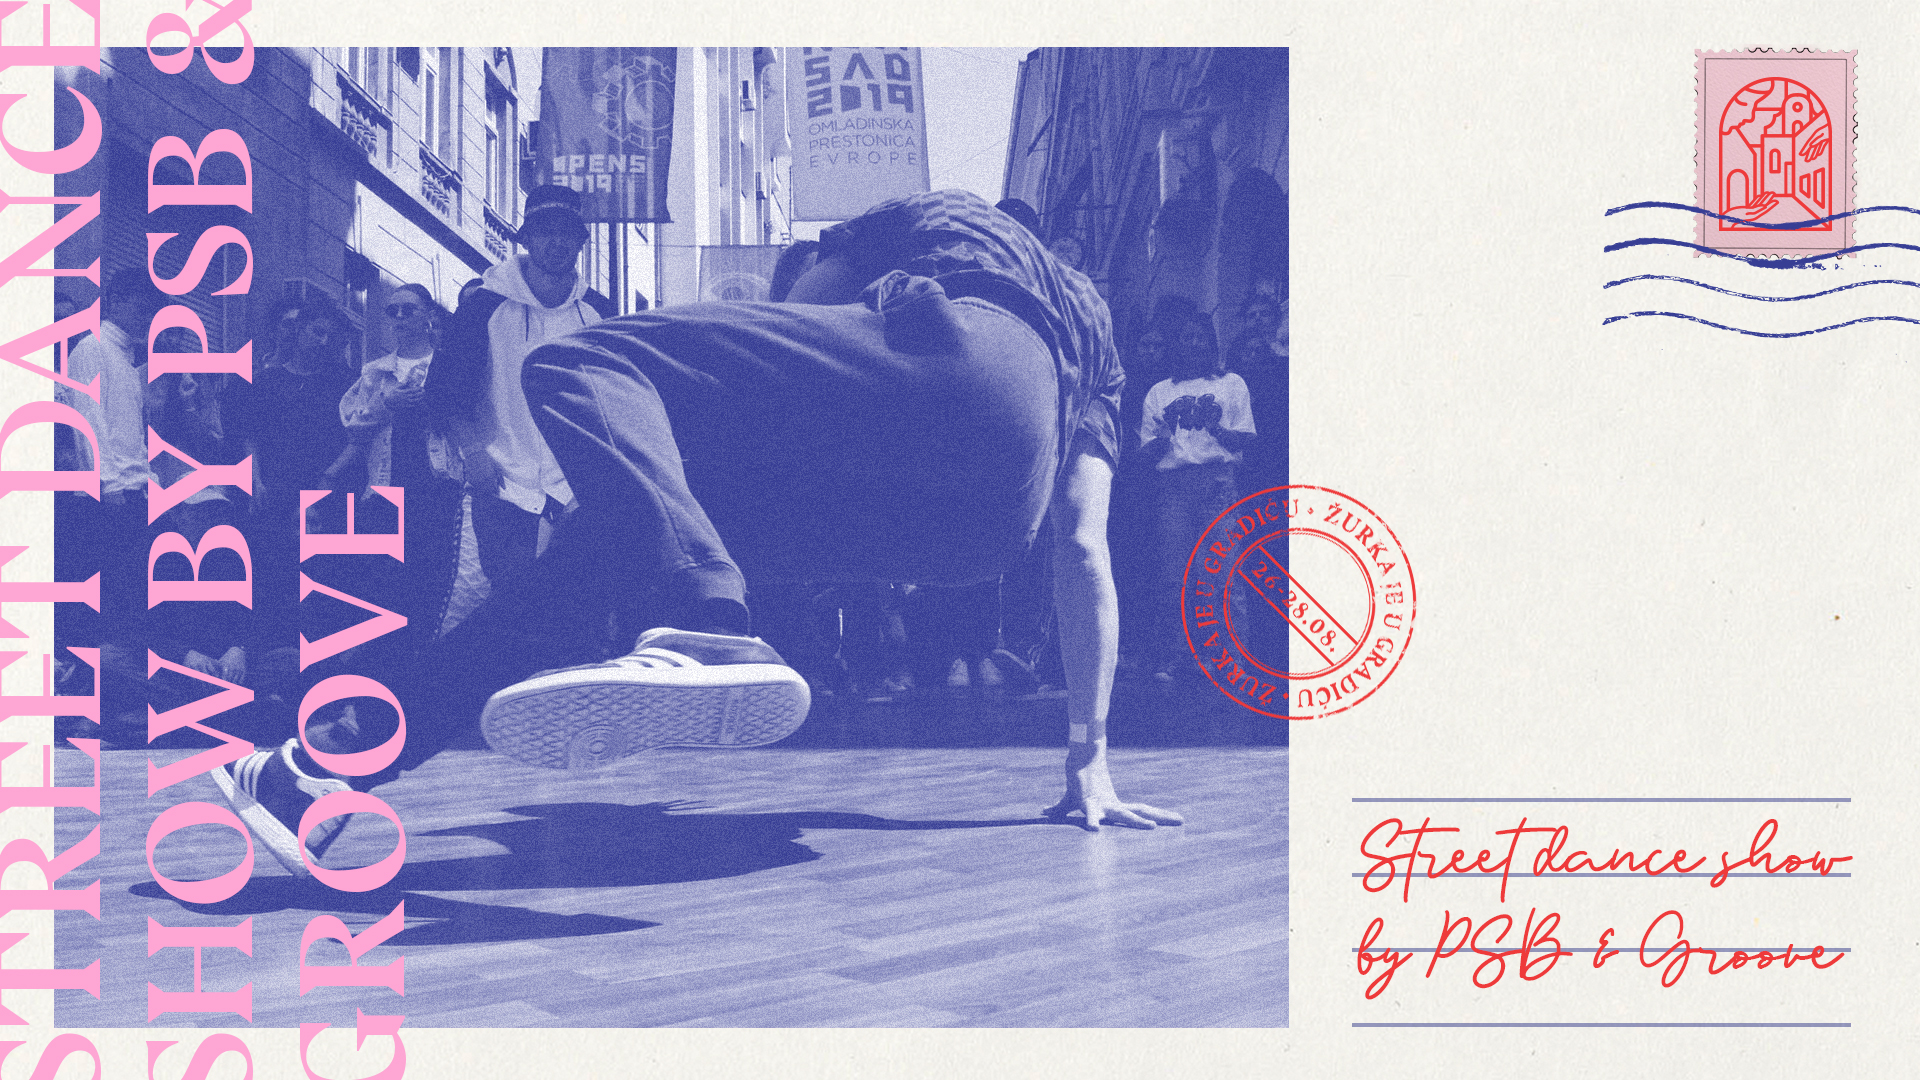 Street dance show by PSB & Groove